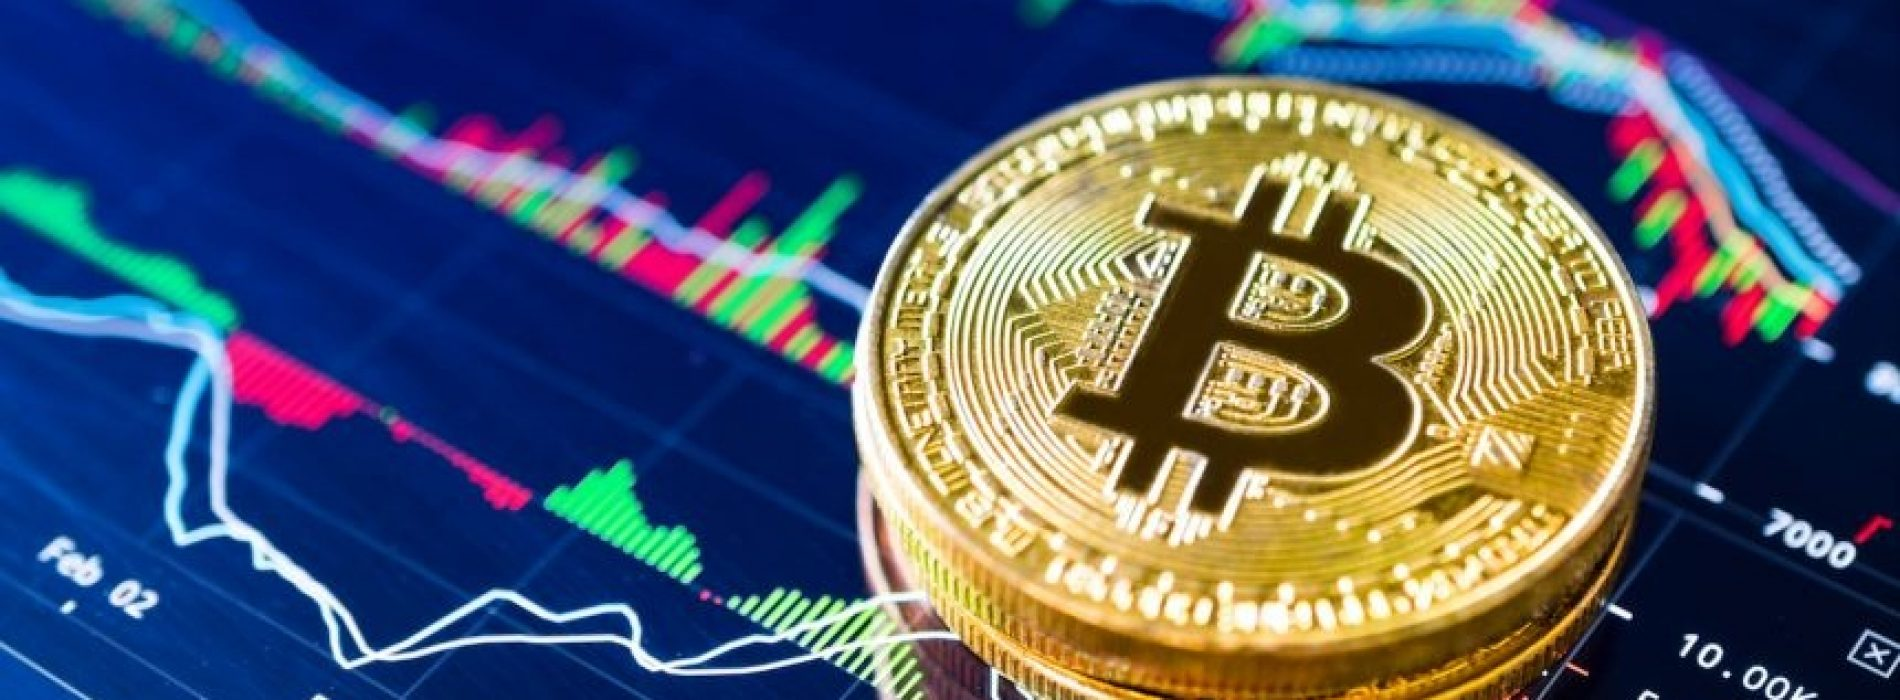 Significance of Bitcoins